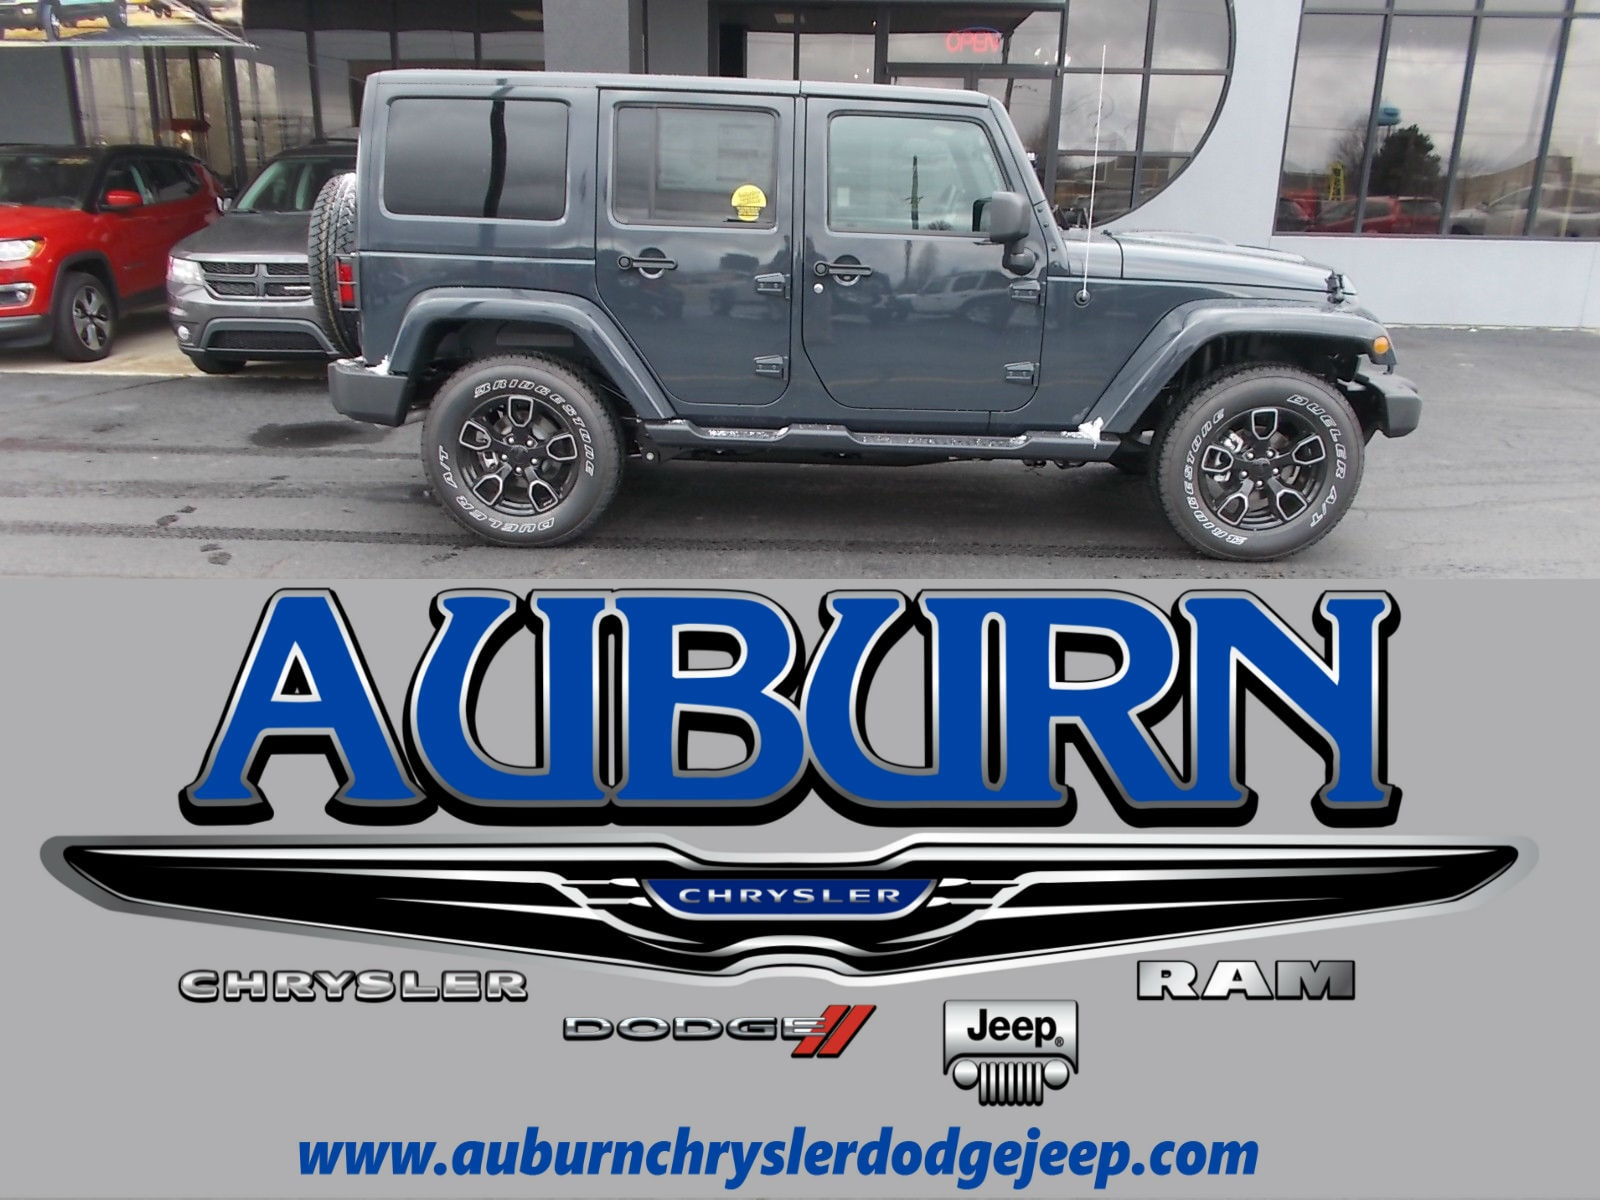 New 2018 Jeep Wrangler Unlimited WRANGLER JK UNLIMITED ALTITUDE 4X4 Sport  Utility For Sale In Auburn